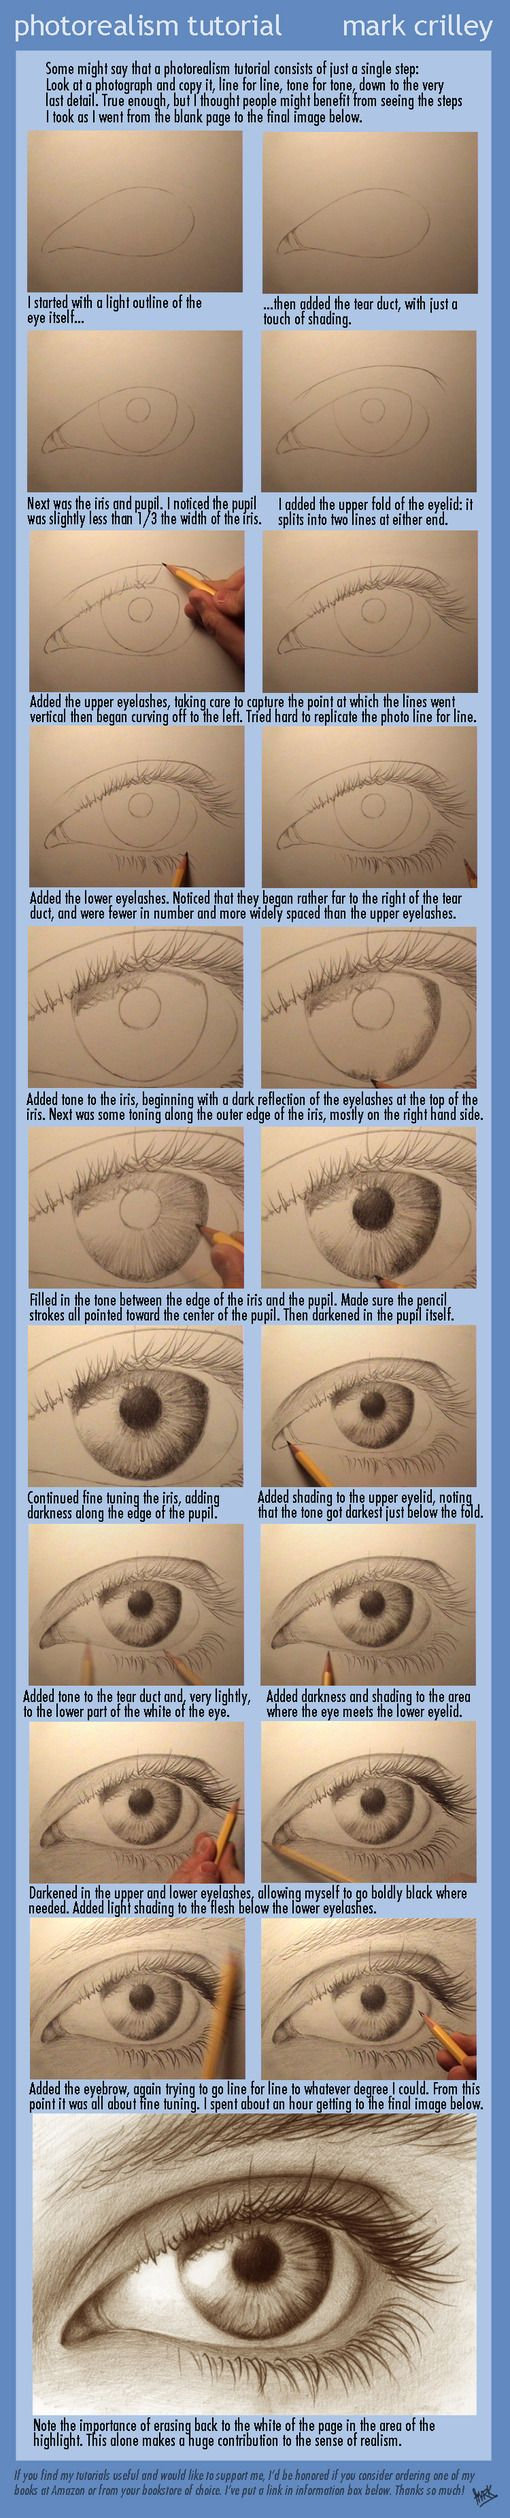 How to draw an eye (photorealism)